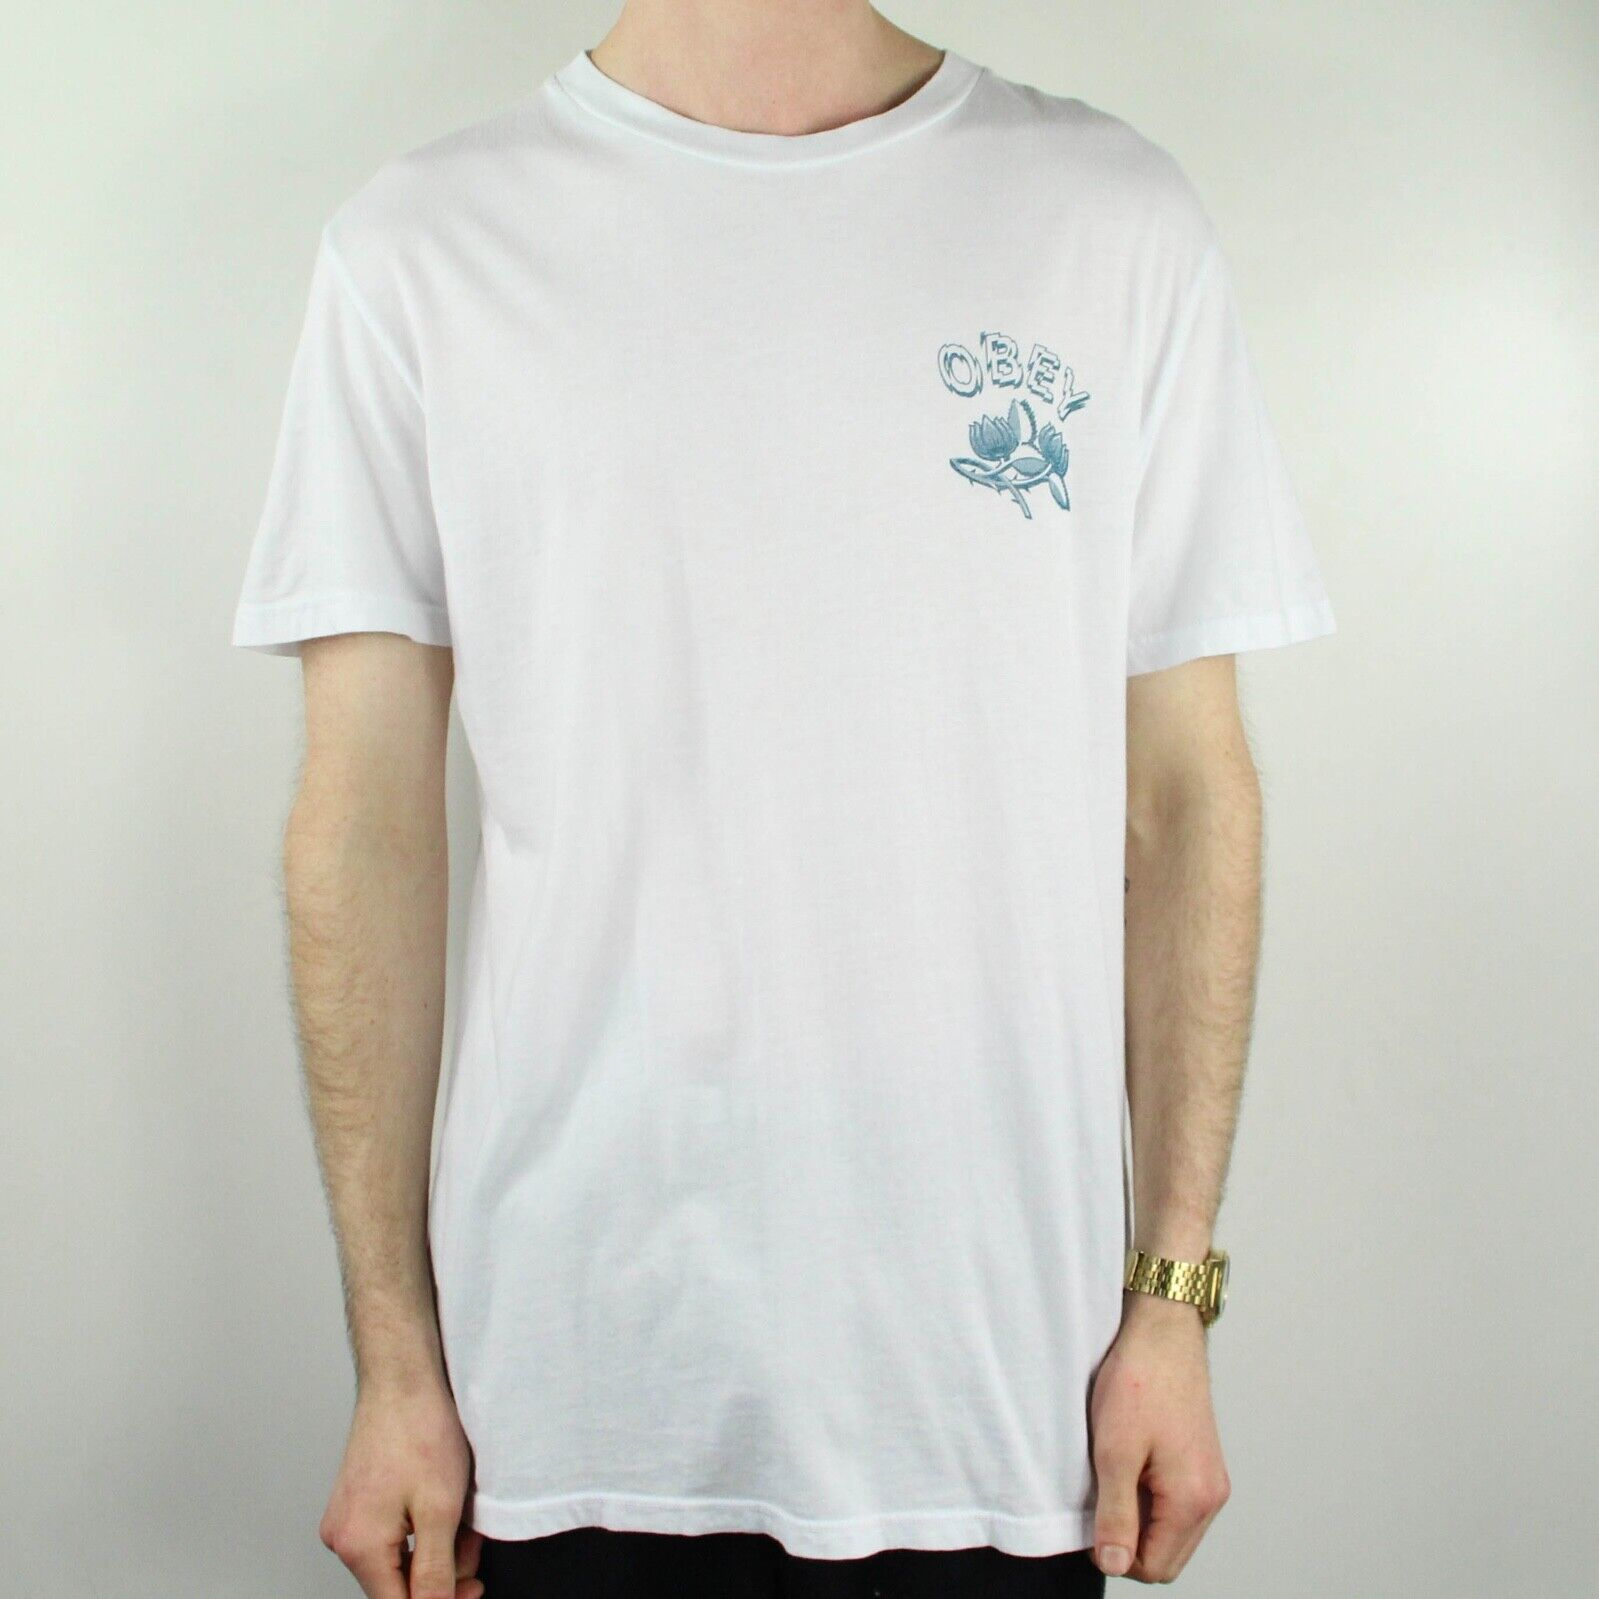 OBEY Briar T-Shirt Tee Brand New in White in size M,L